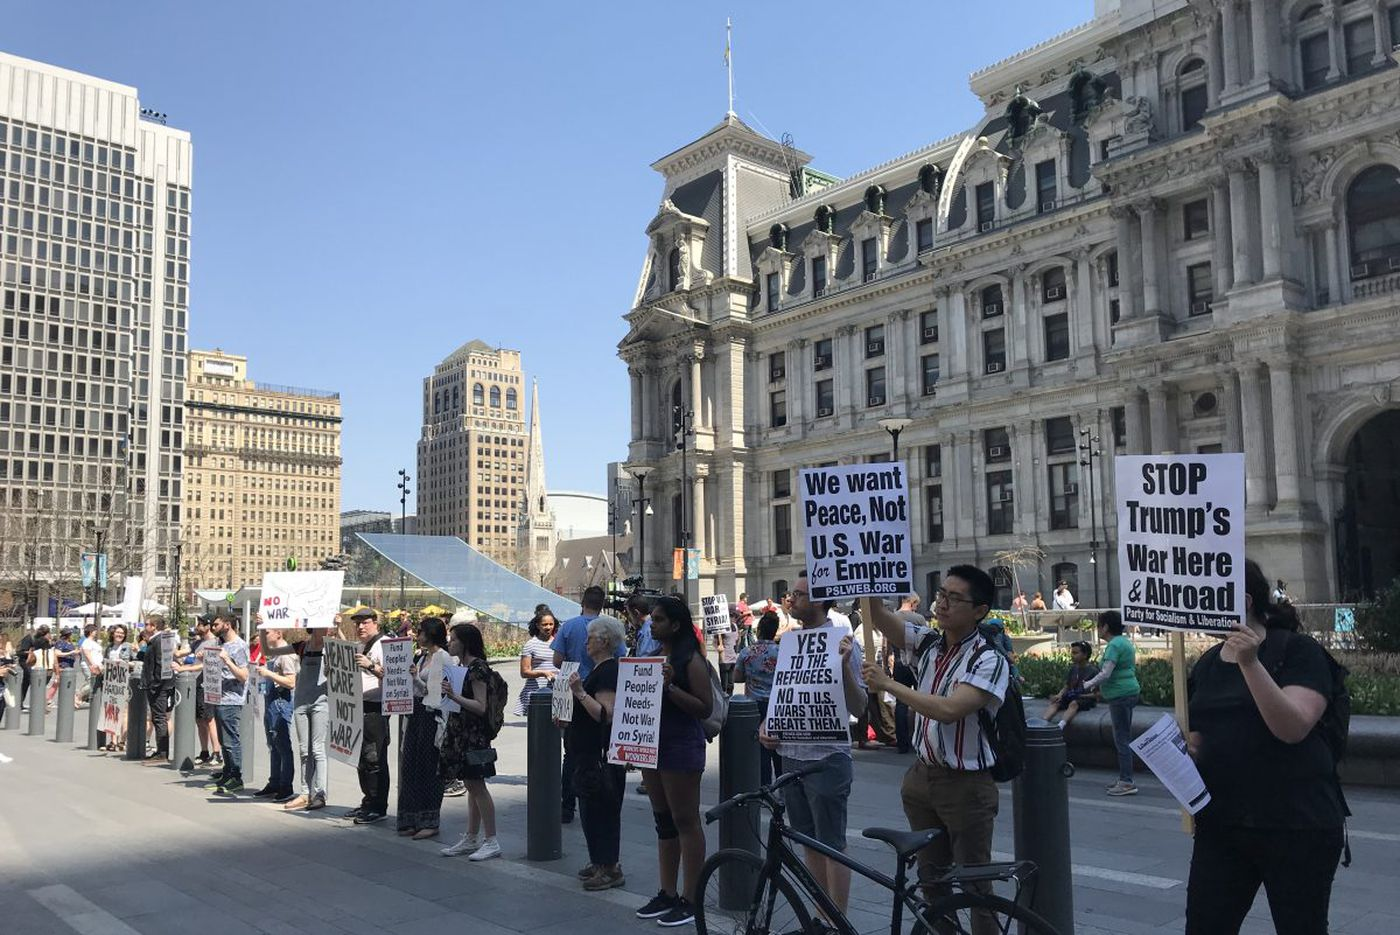 Local protesters demonstrate against U.S. military strikes in Syria